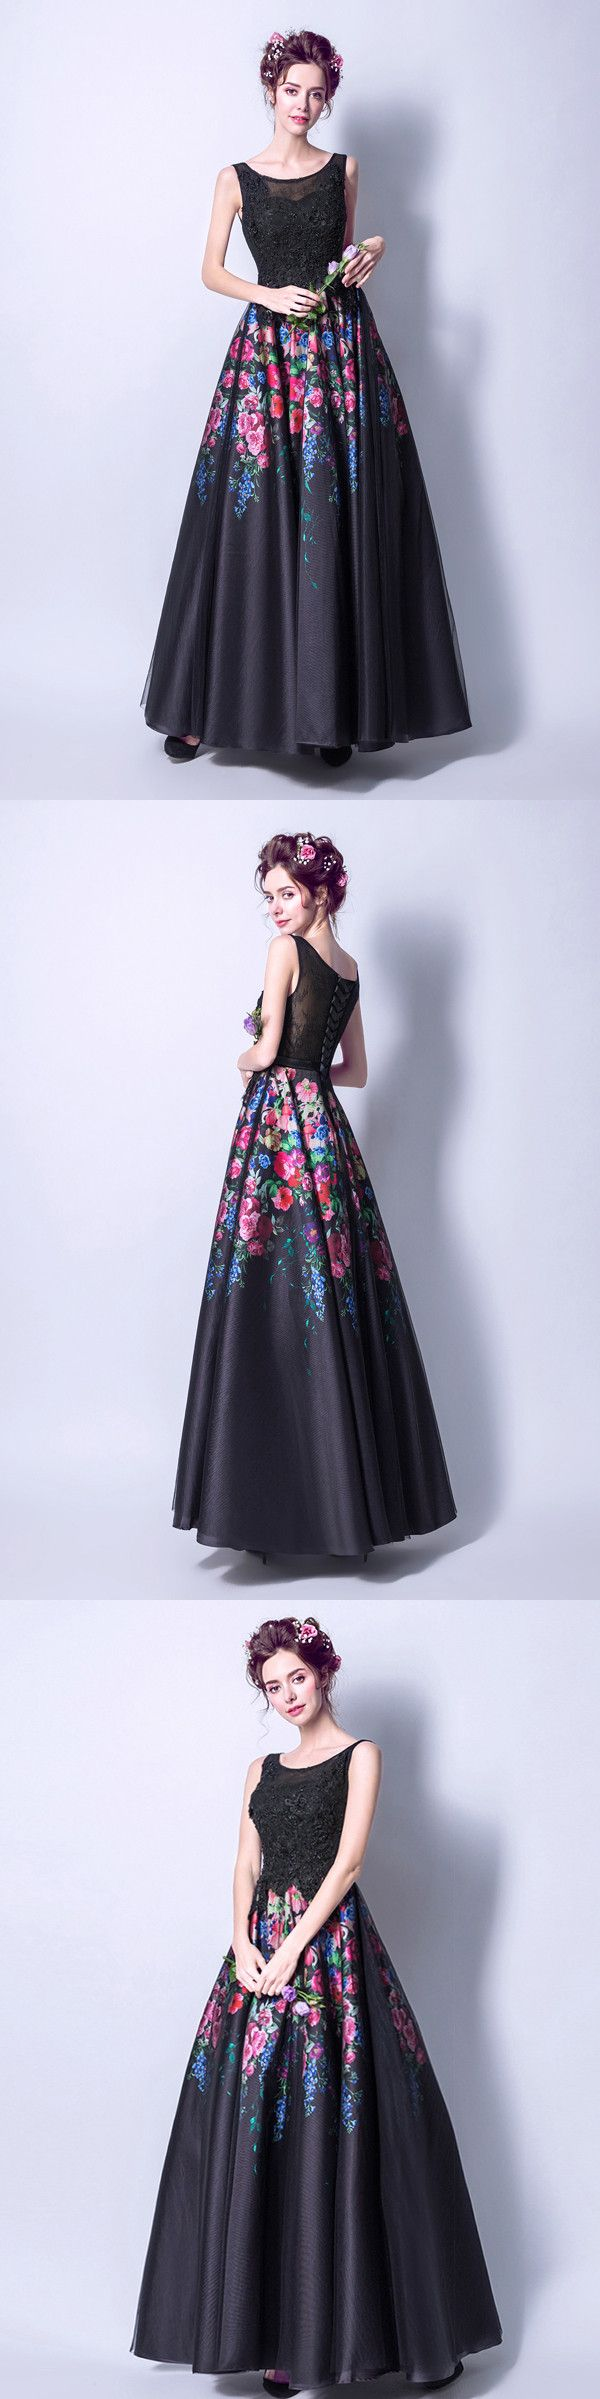 Black floral prom dress cheap long lace prom dress vb in